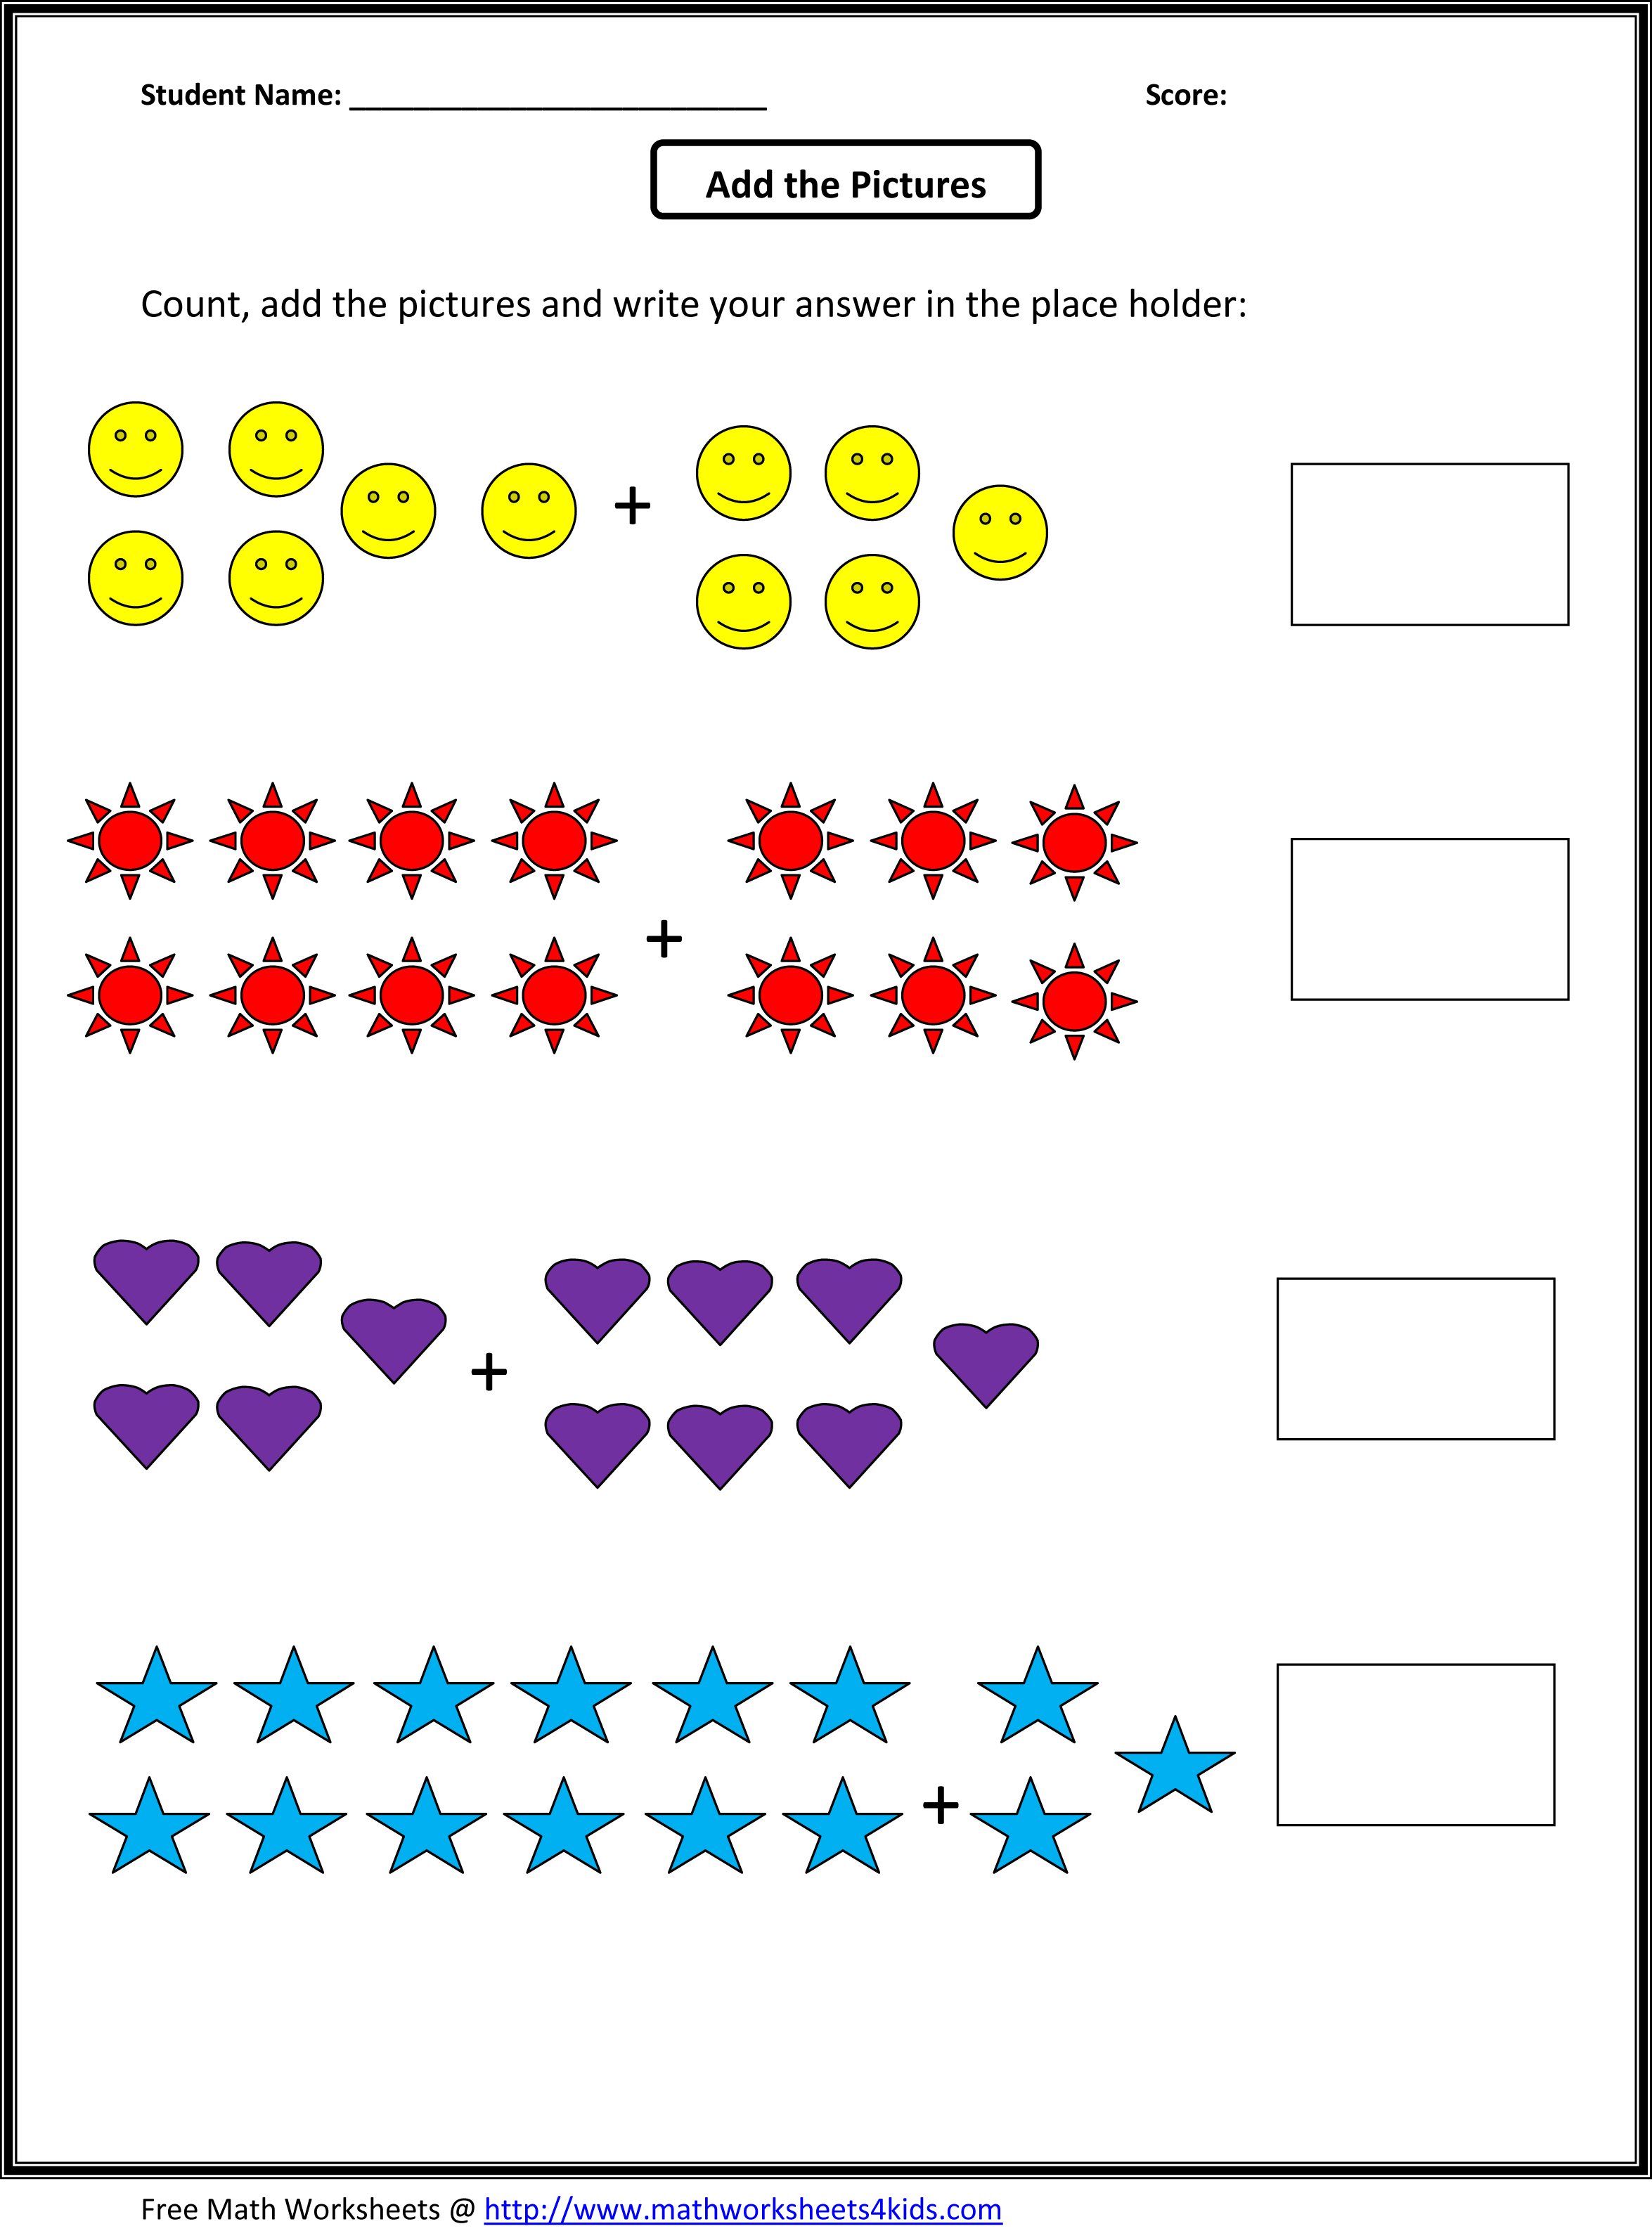 Weirdmailus  Marvelous Grade  Maths Worksheet  Reocurent With Engaging Math Worksheets For St Grade Free  Reocurent With Astonishing Animals And Their Babies Worksheet Also  Hours Clock Worksheets In Addition Free Year  English Worksheets And Printable Math Worksheets For Second Grade As Well As Teaching Kids To Tell Time Worksheets Additionally Math For Fun Worksheets From Reocurentcom With Weirdmailus  Engaging Grade  Maths Worksheet  Reocurent With Astonishing Math Worksheets For St Grade Free  Reocurent And Marvelous Animals And Their Babies Worksheet Also  Hours Clock Worksheets In Addition Free Year  English Worksheets From Reocurentcom